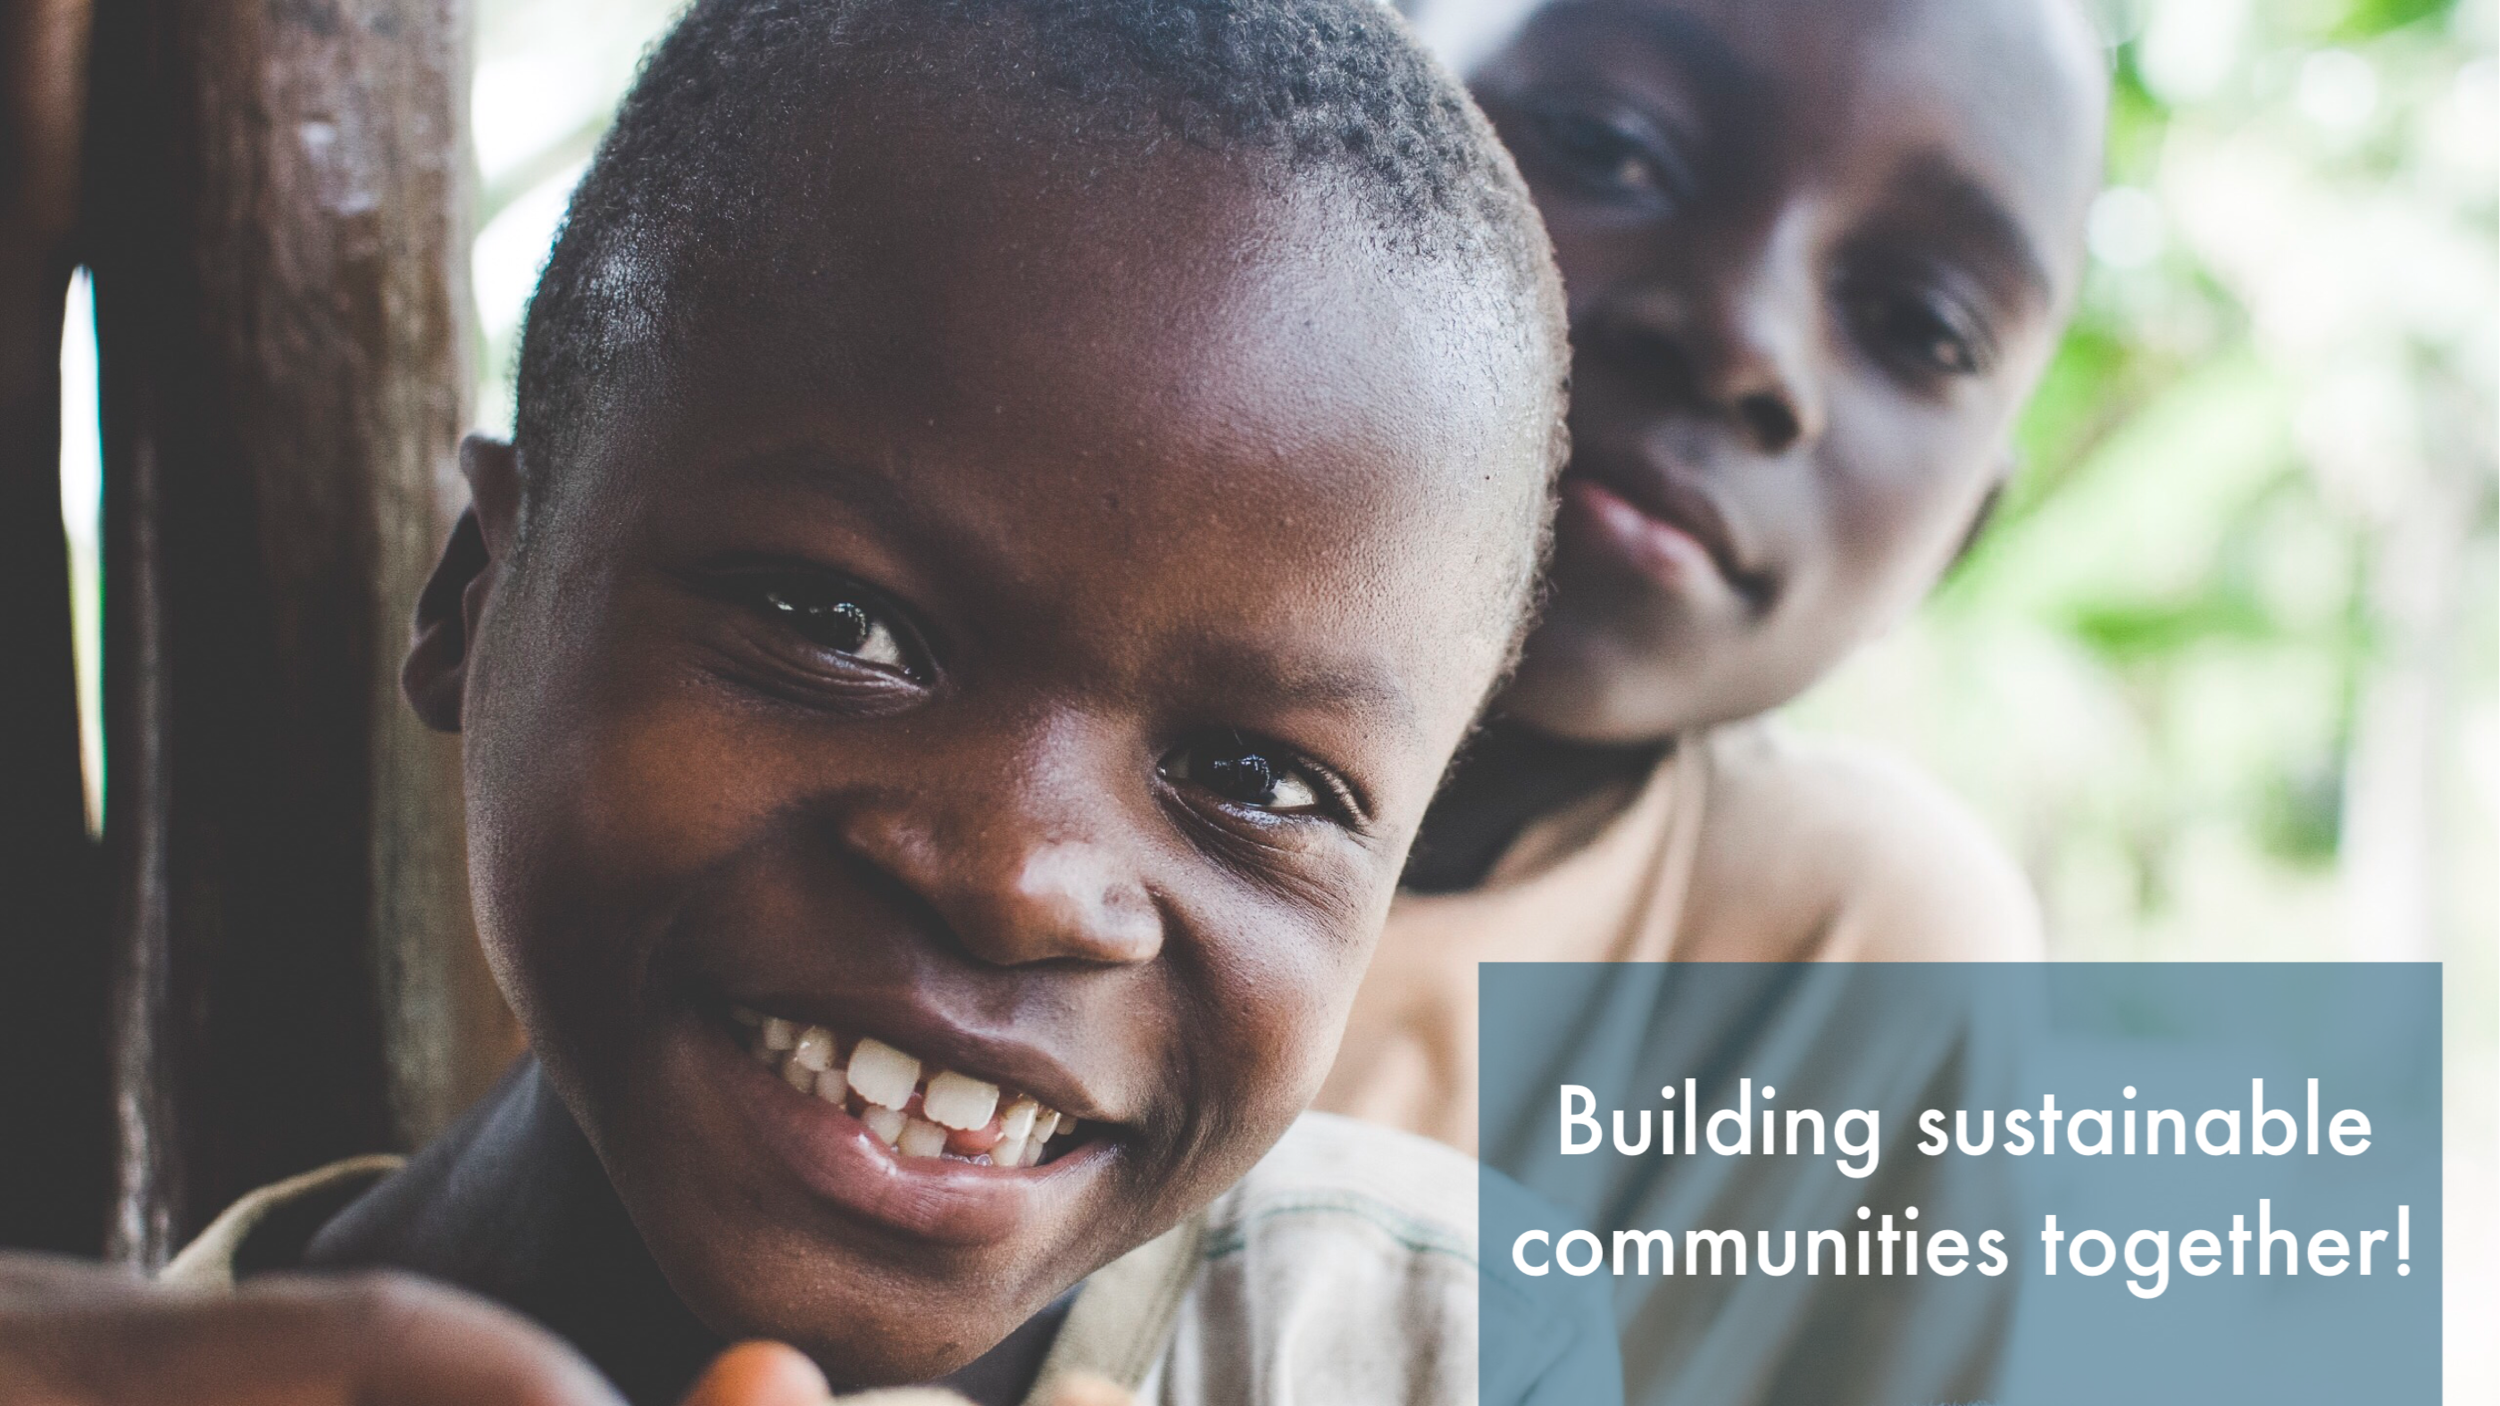 Building Sustainable Communities Together